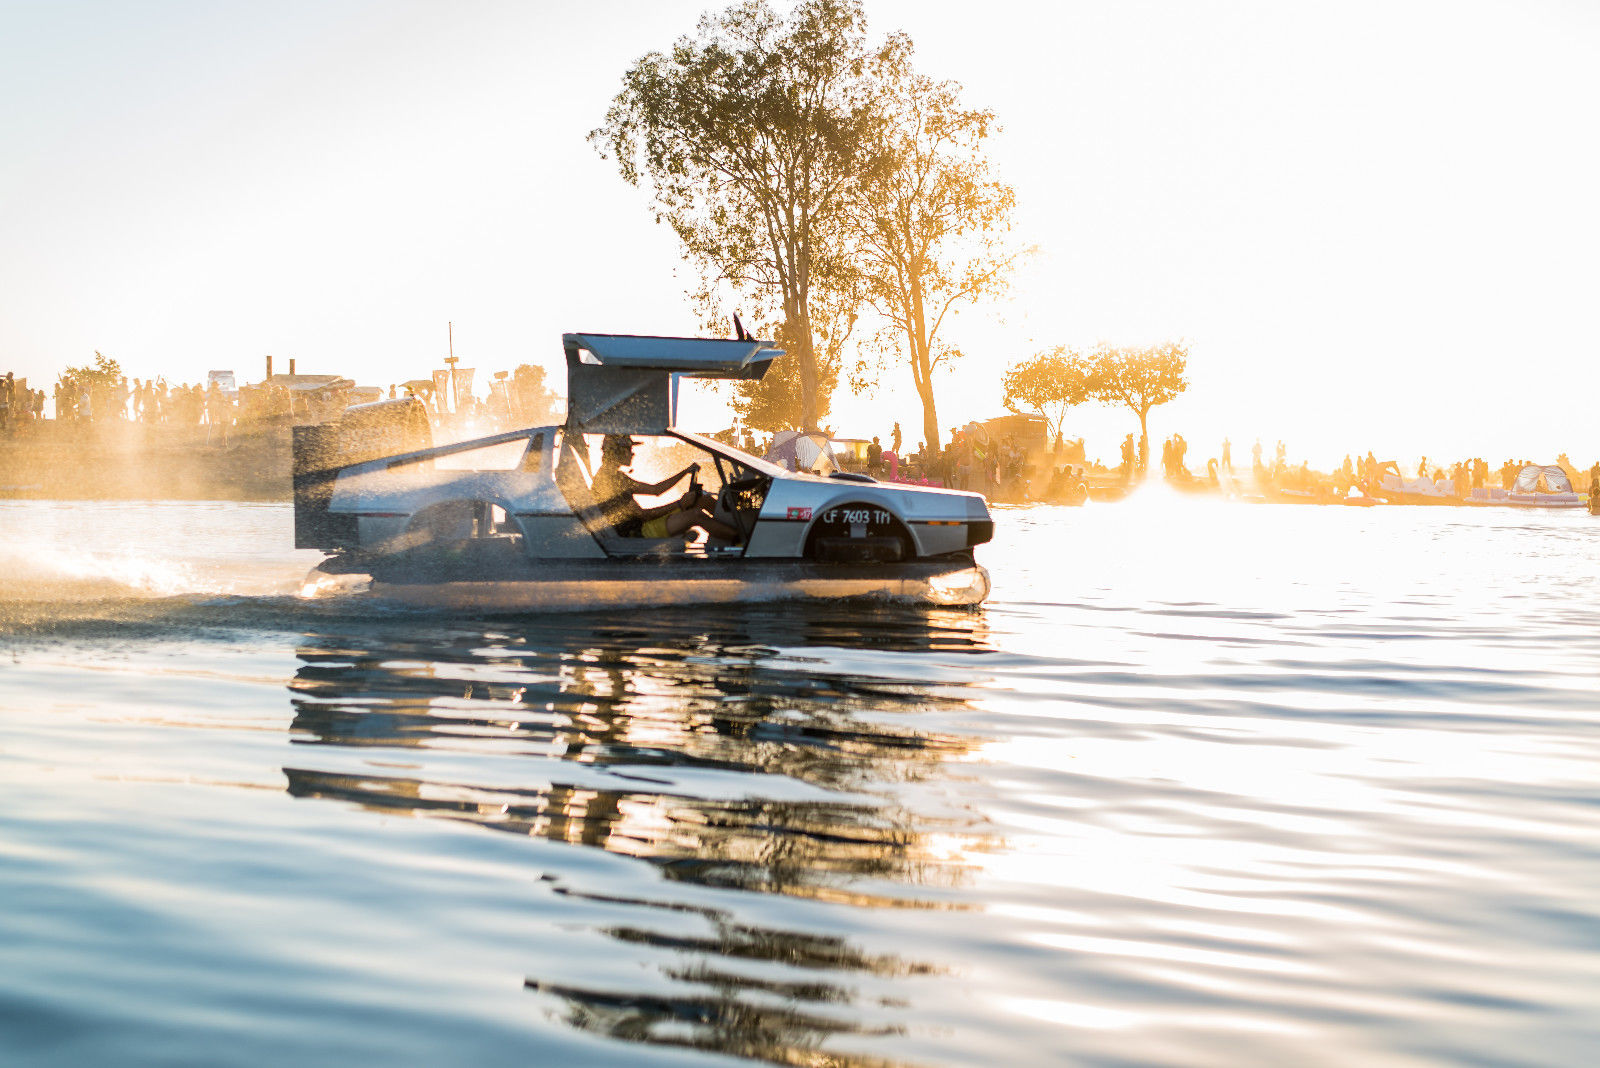 delorean hovercraft sunset side